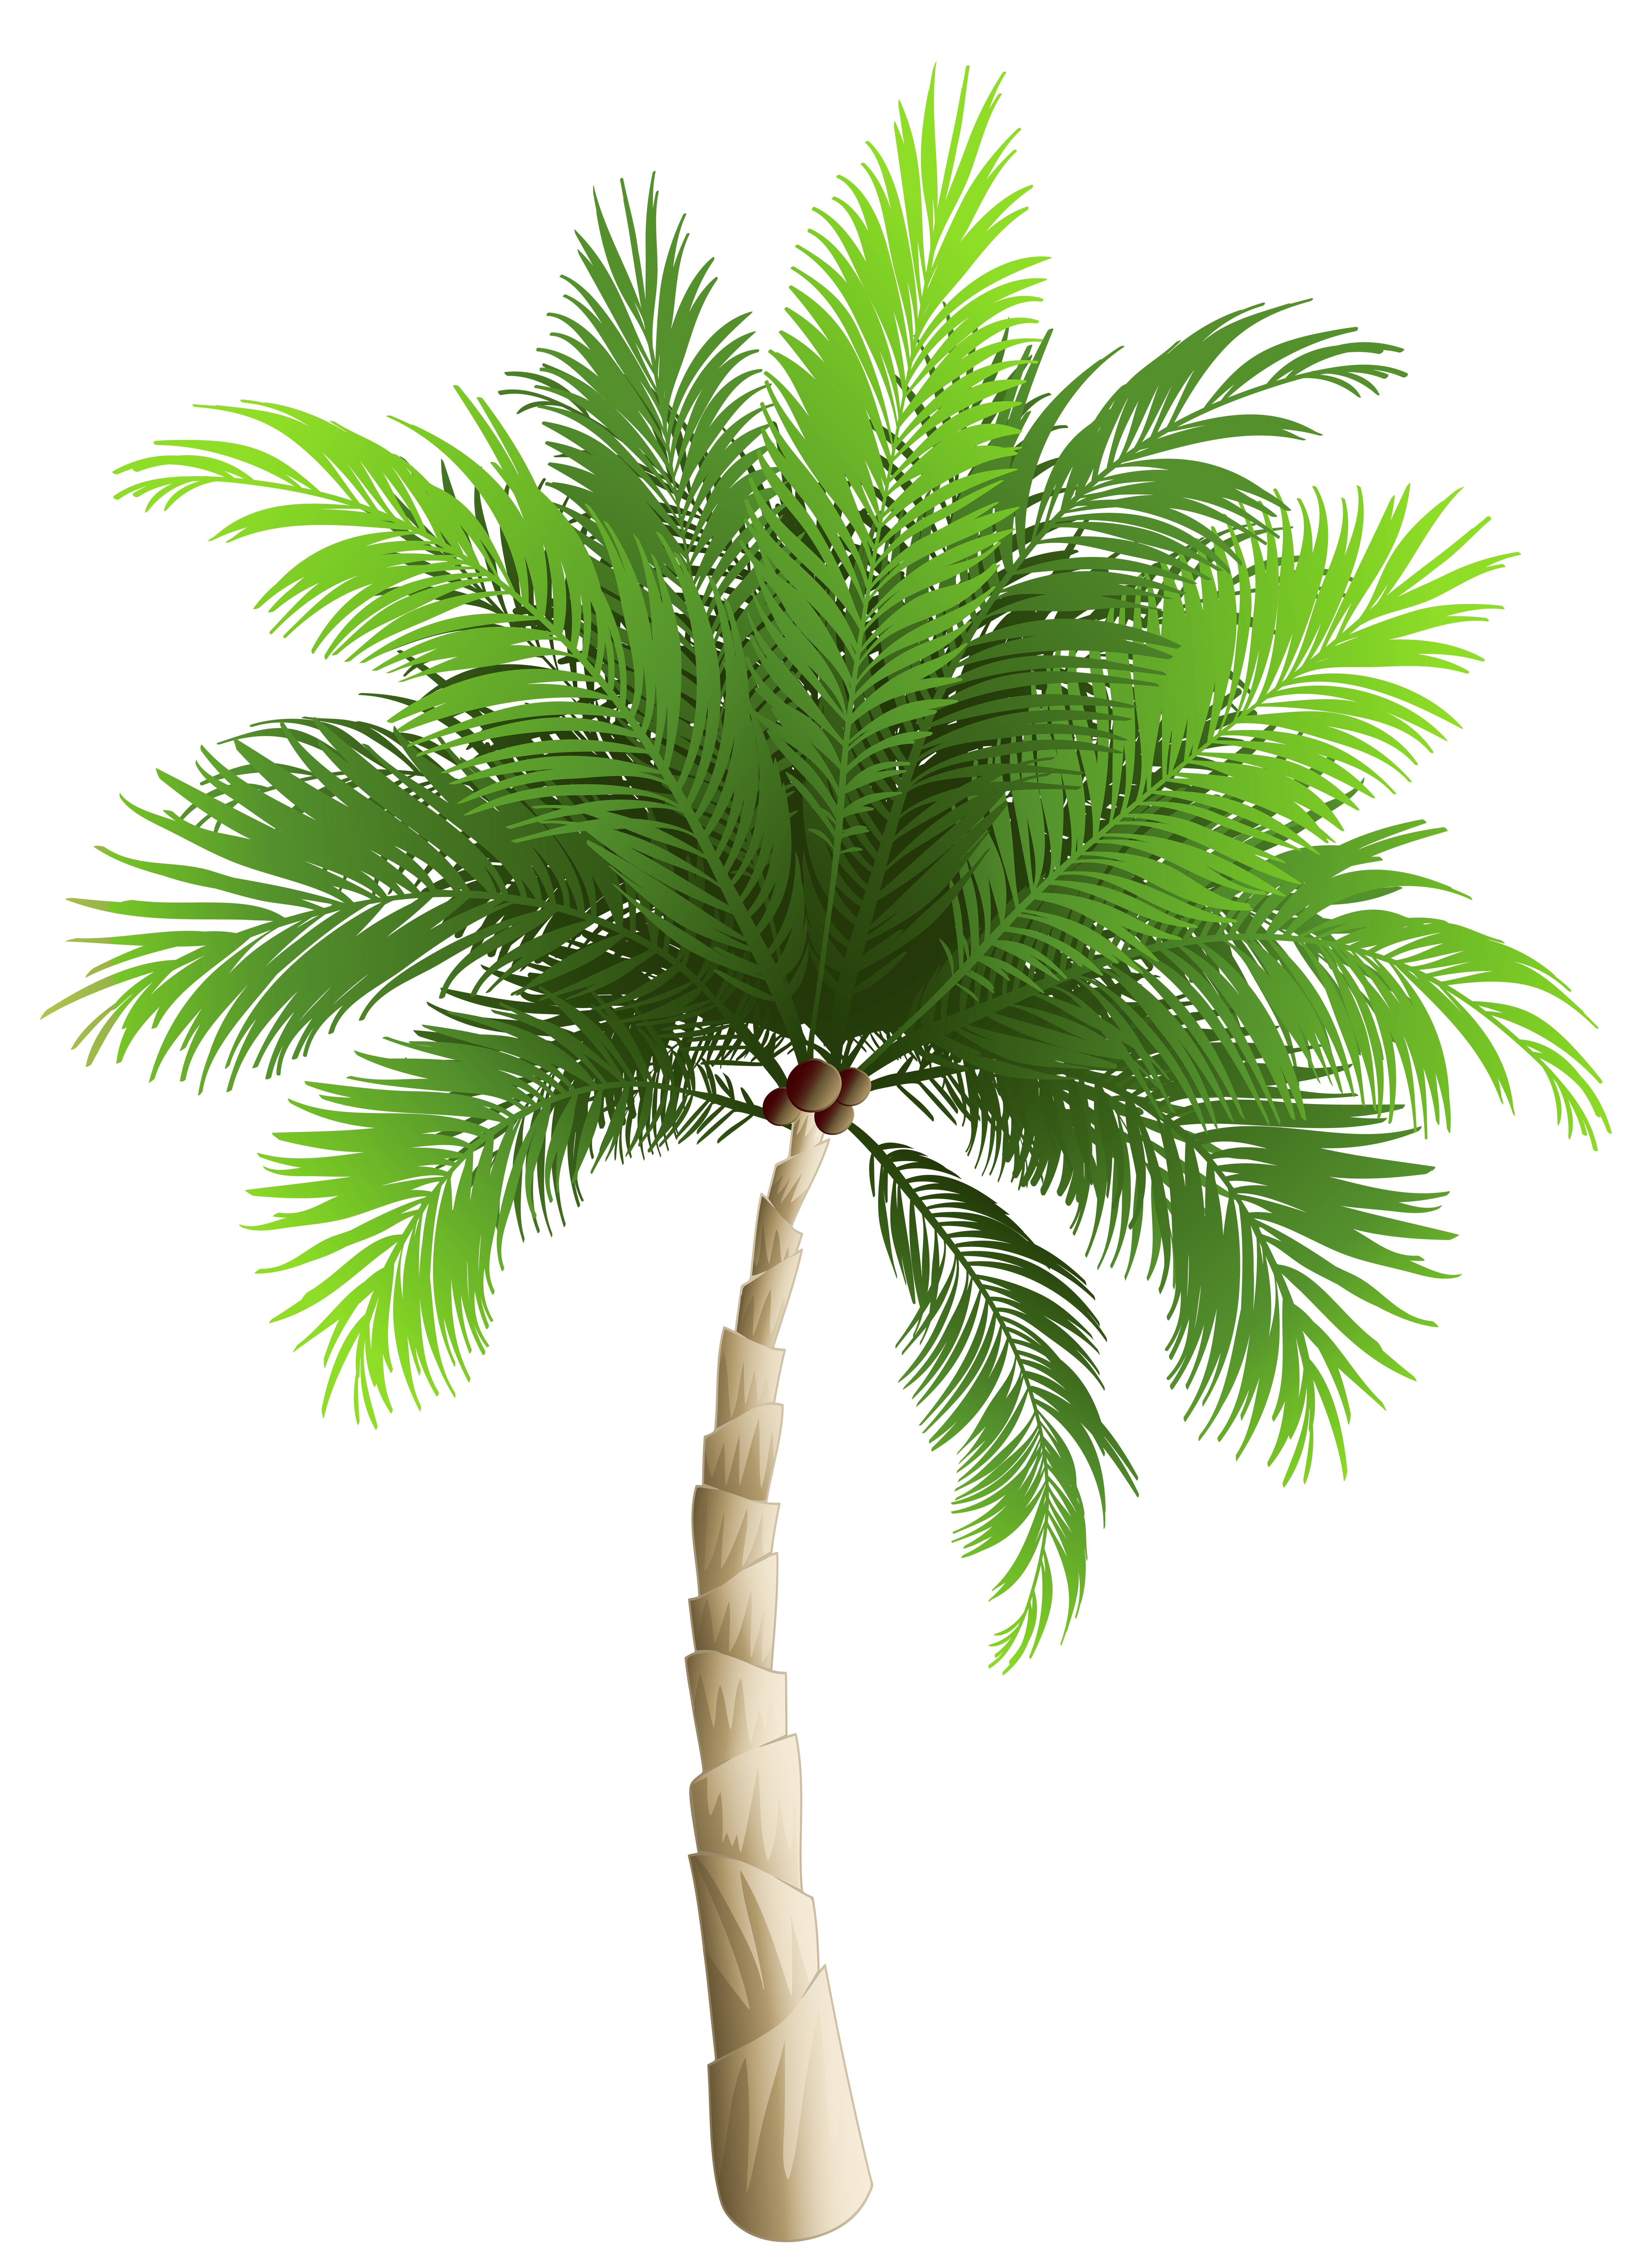 Tree png image sandro. Palm clipart watercolor